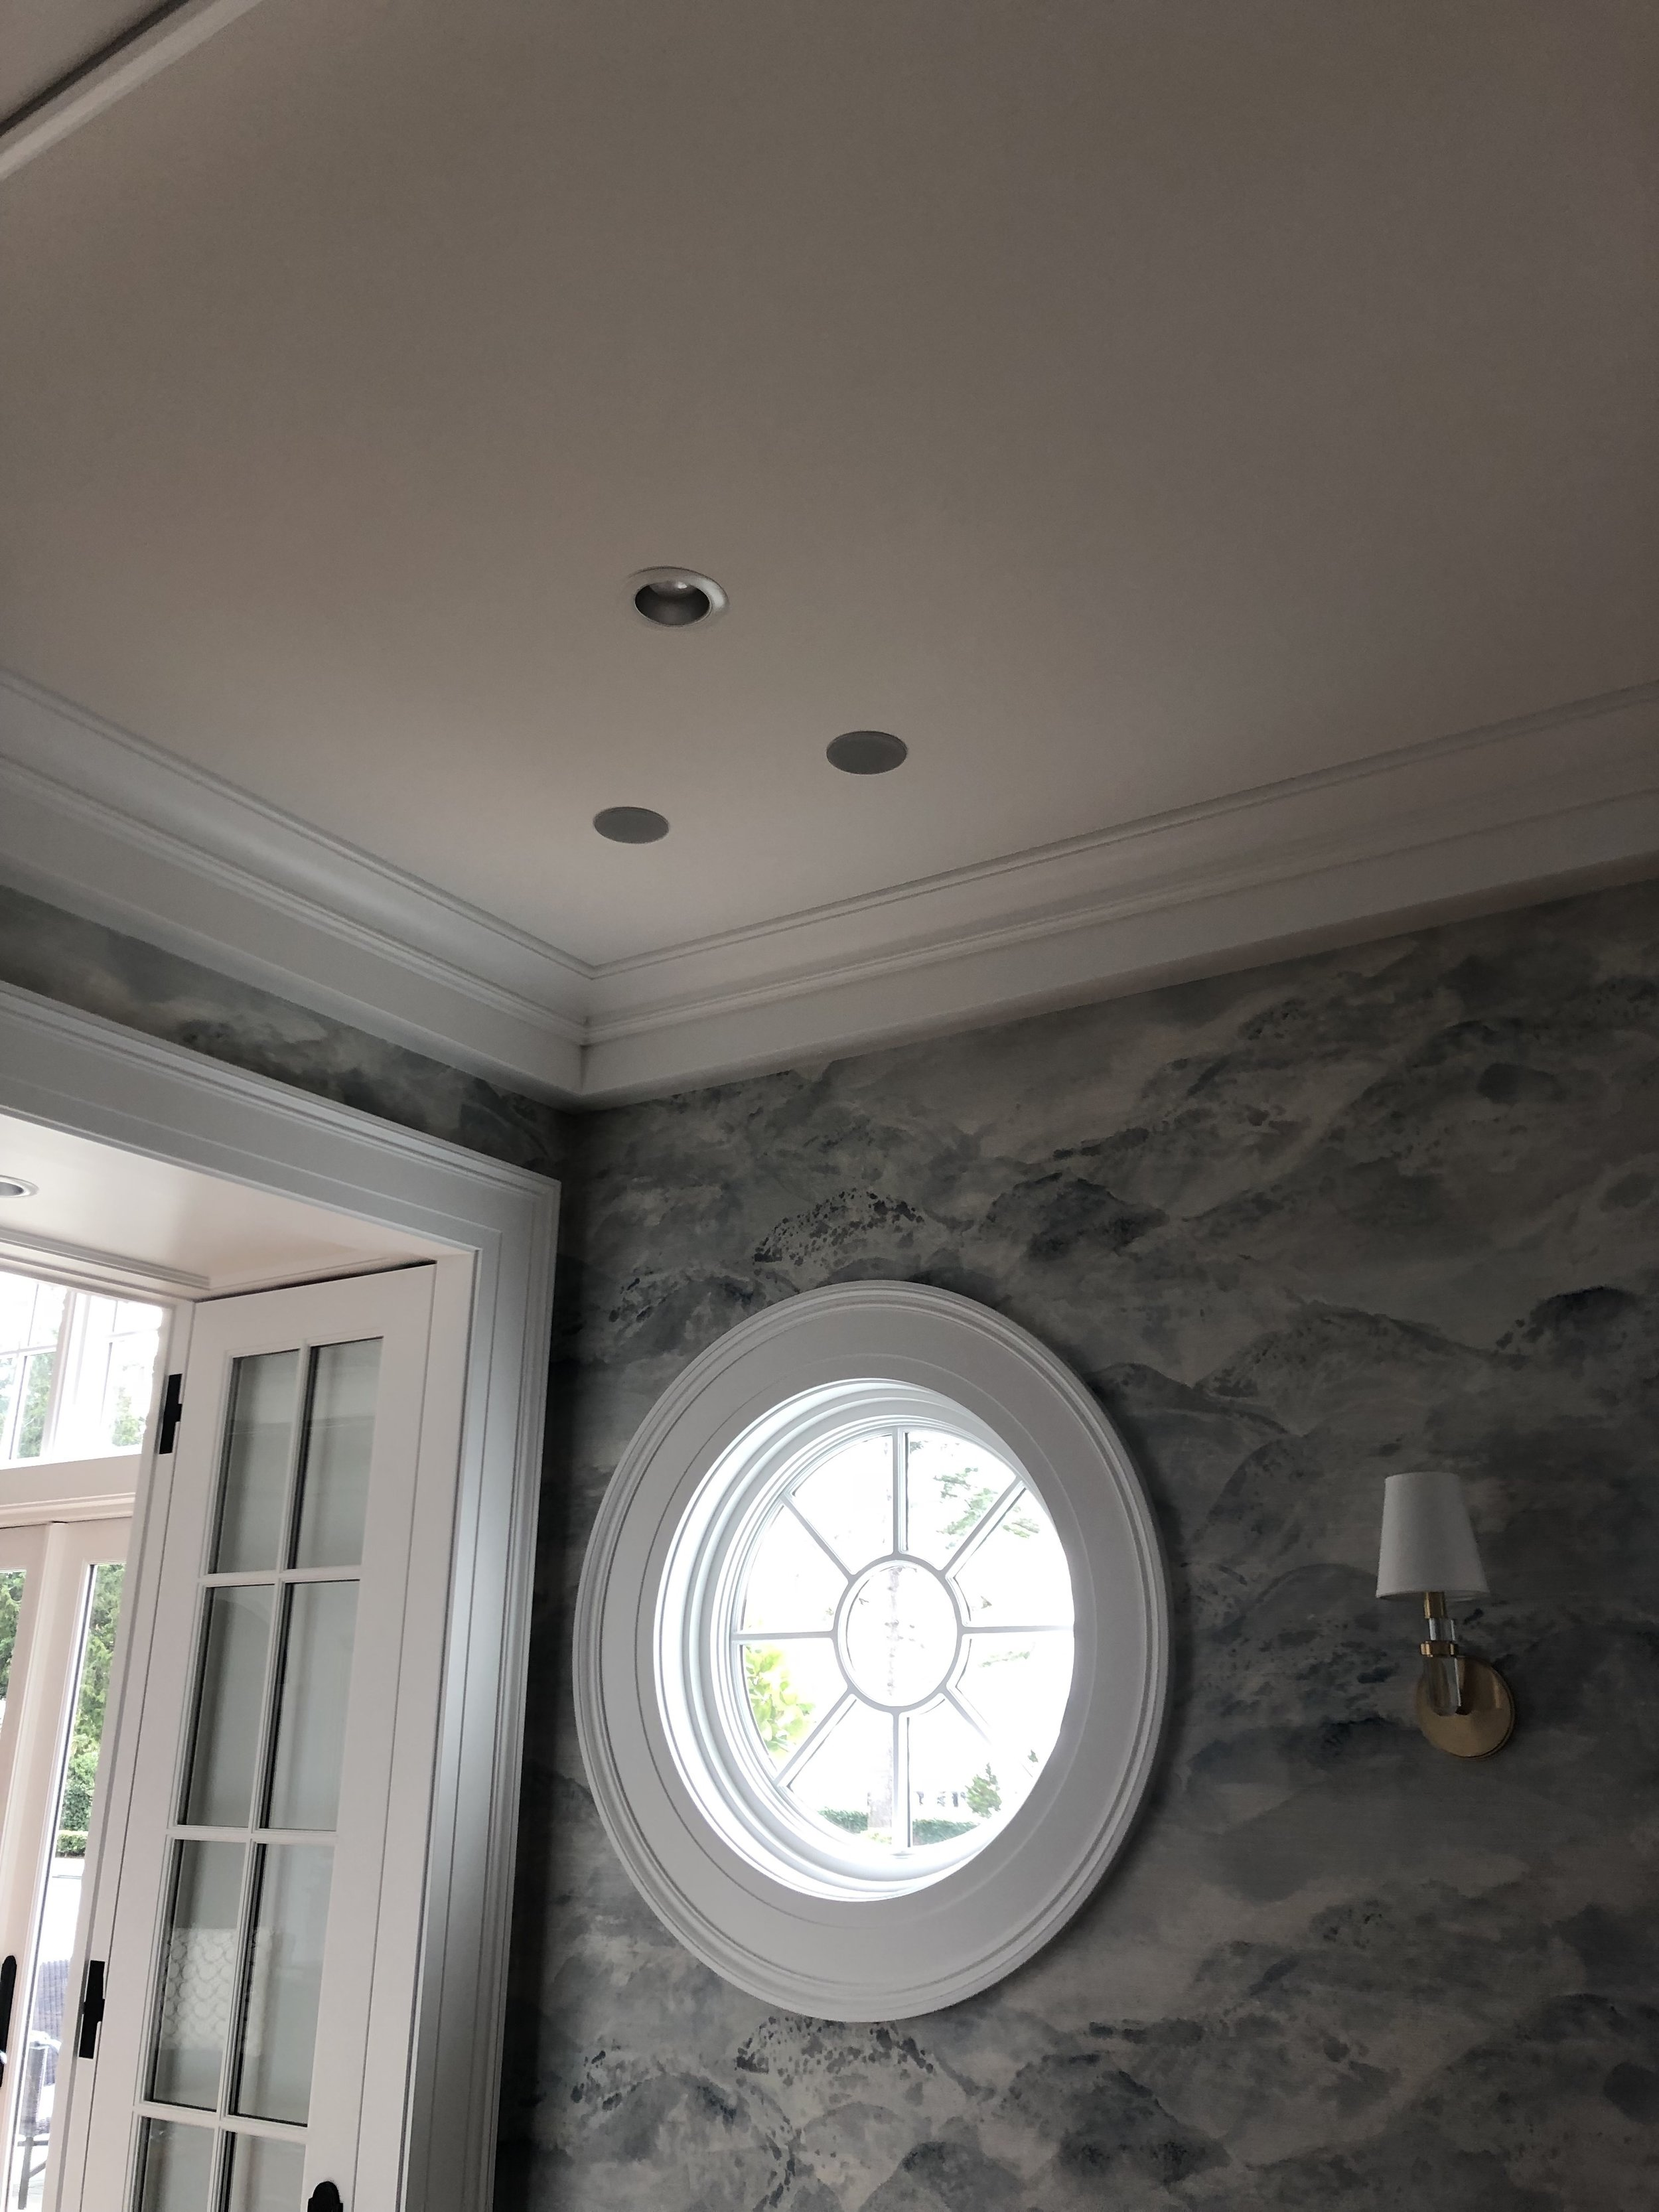 Very small, and matching the fixtures, this is a great detail. Here we feature very small aperture in-ceiling speakers, including subwoofer.